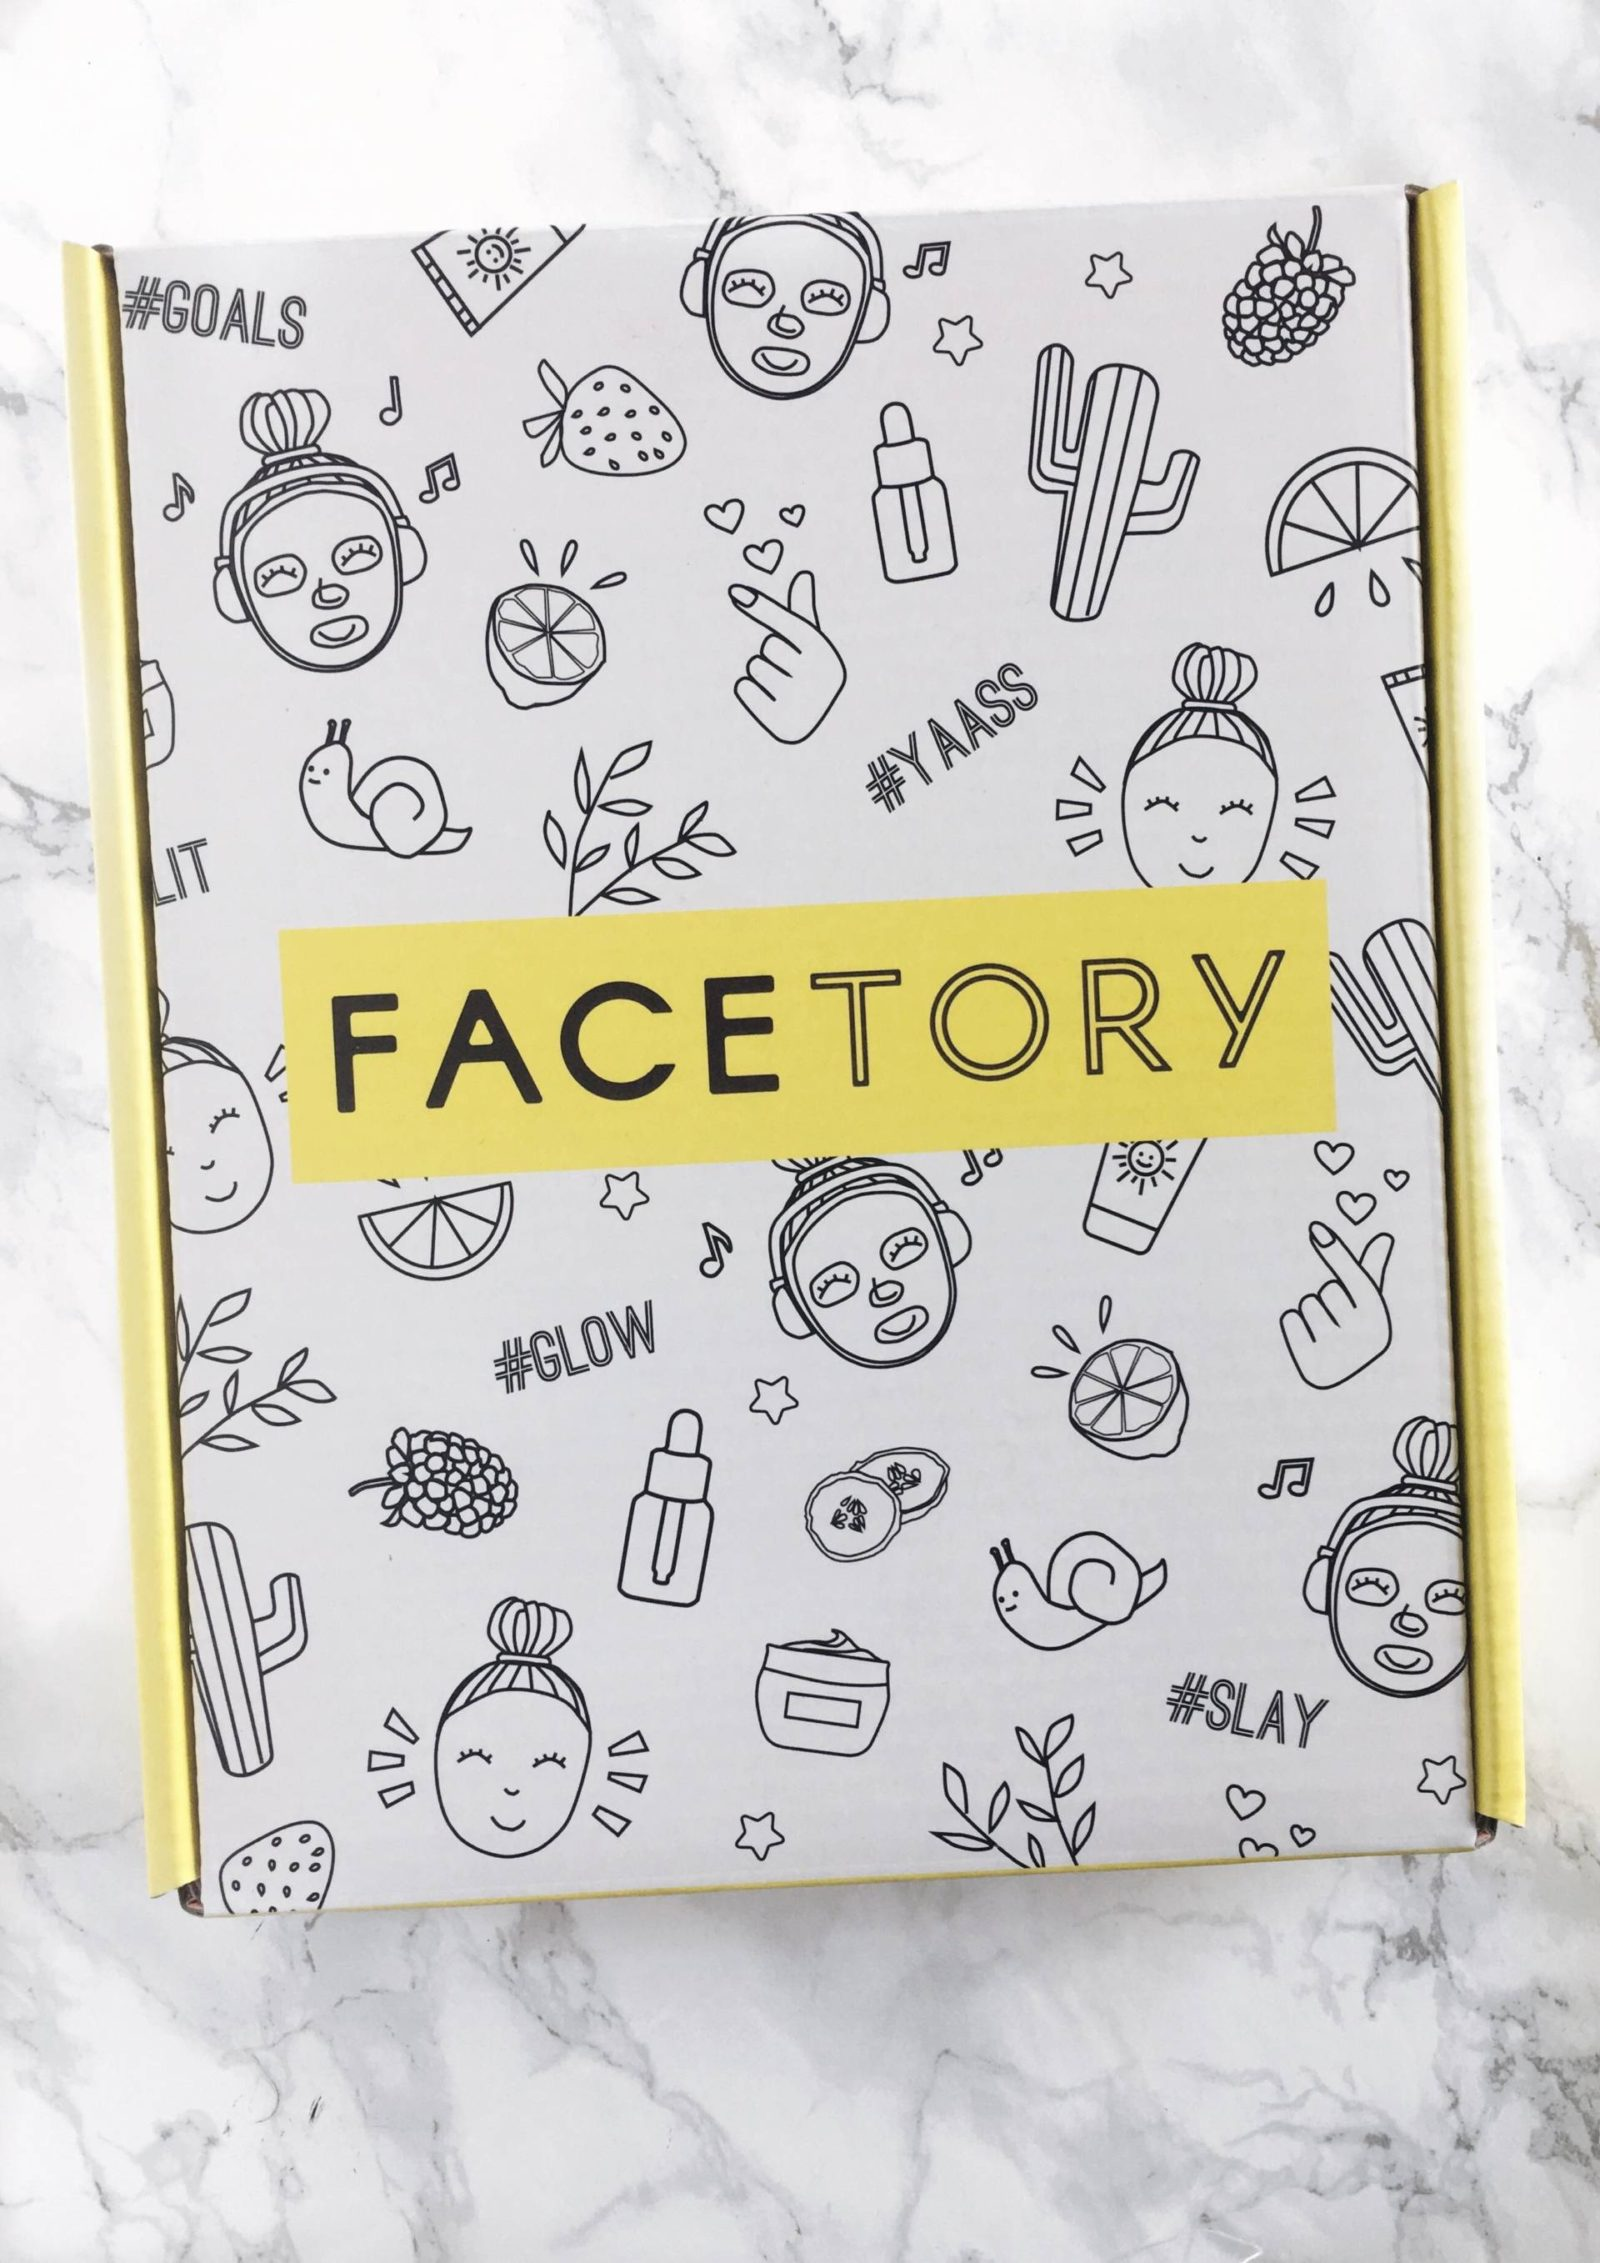 Facetory review - Le Fab Chic